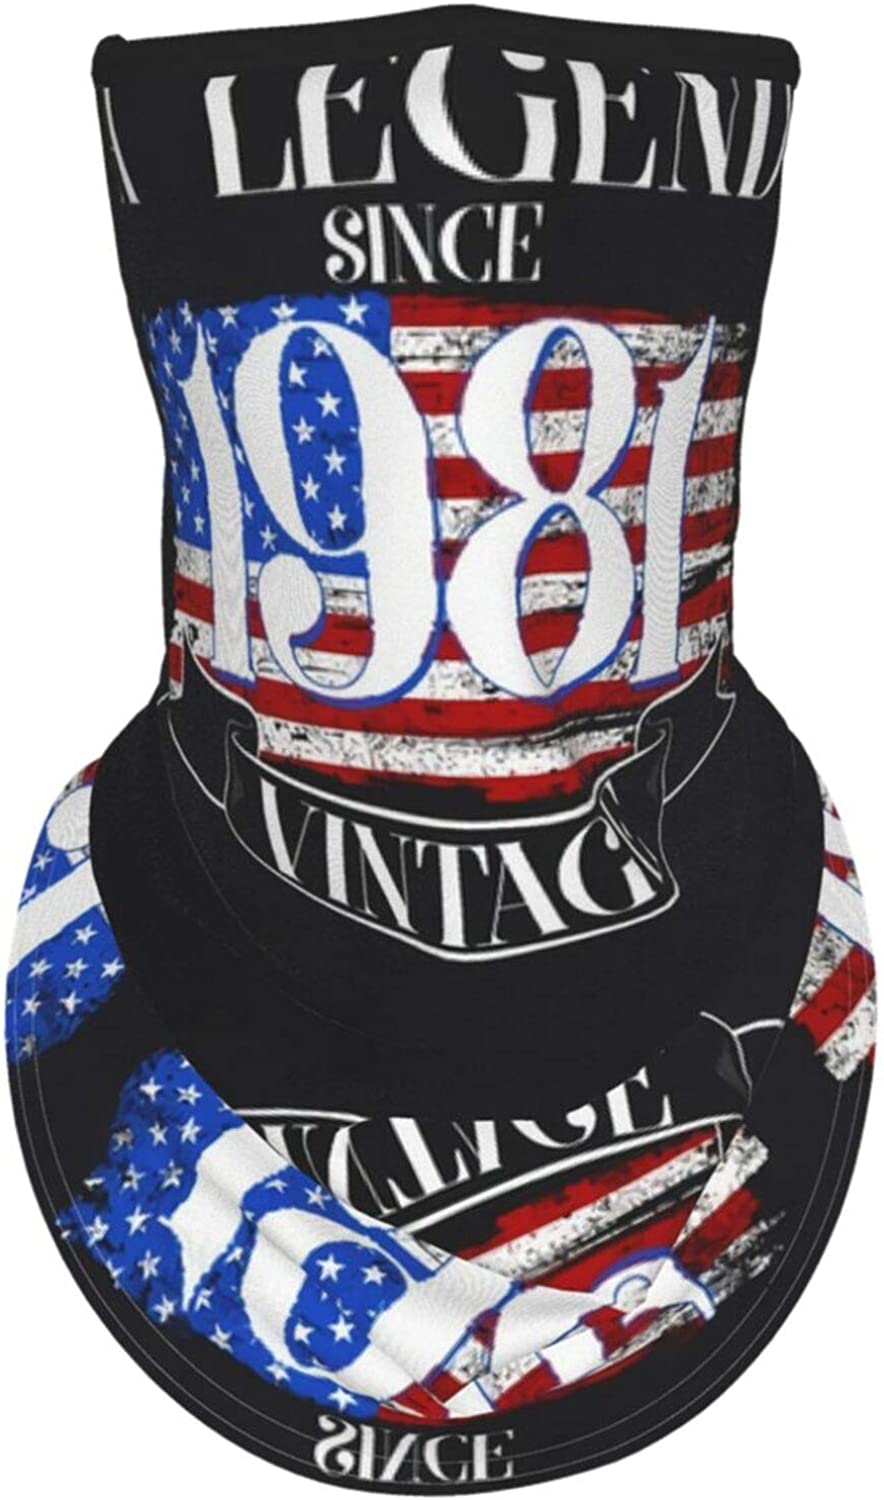 Ear Hangers Face Balaclava 40th Birthday Legend Since 1981 Vintage Usa Flag Black Protective Cover Wristband Bandanas Neck Gaiter Dust-Proof,Anti-Pungent Gas,Washable